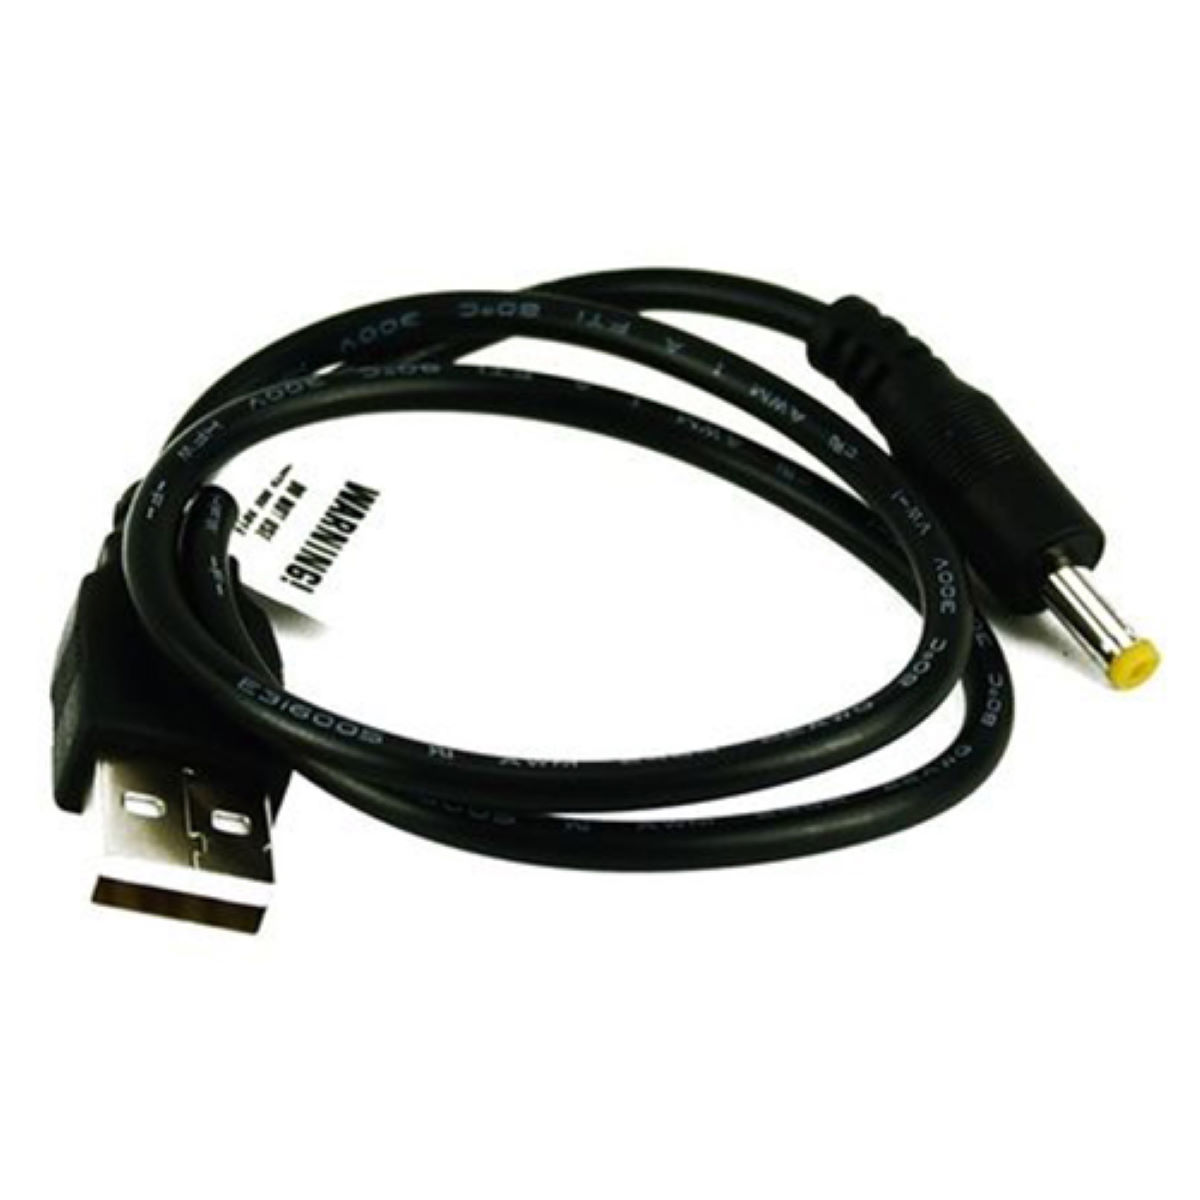 Exposure USB Charger Cable - Recambios para luces